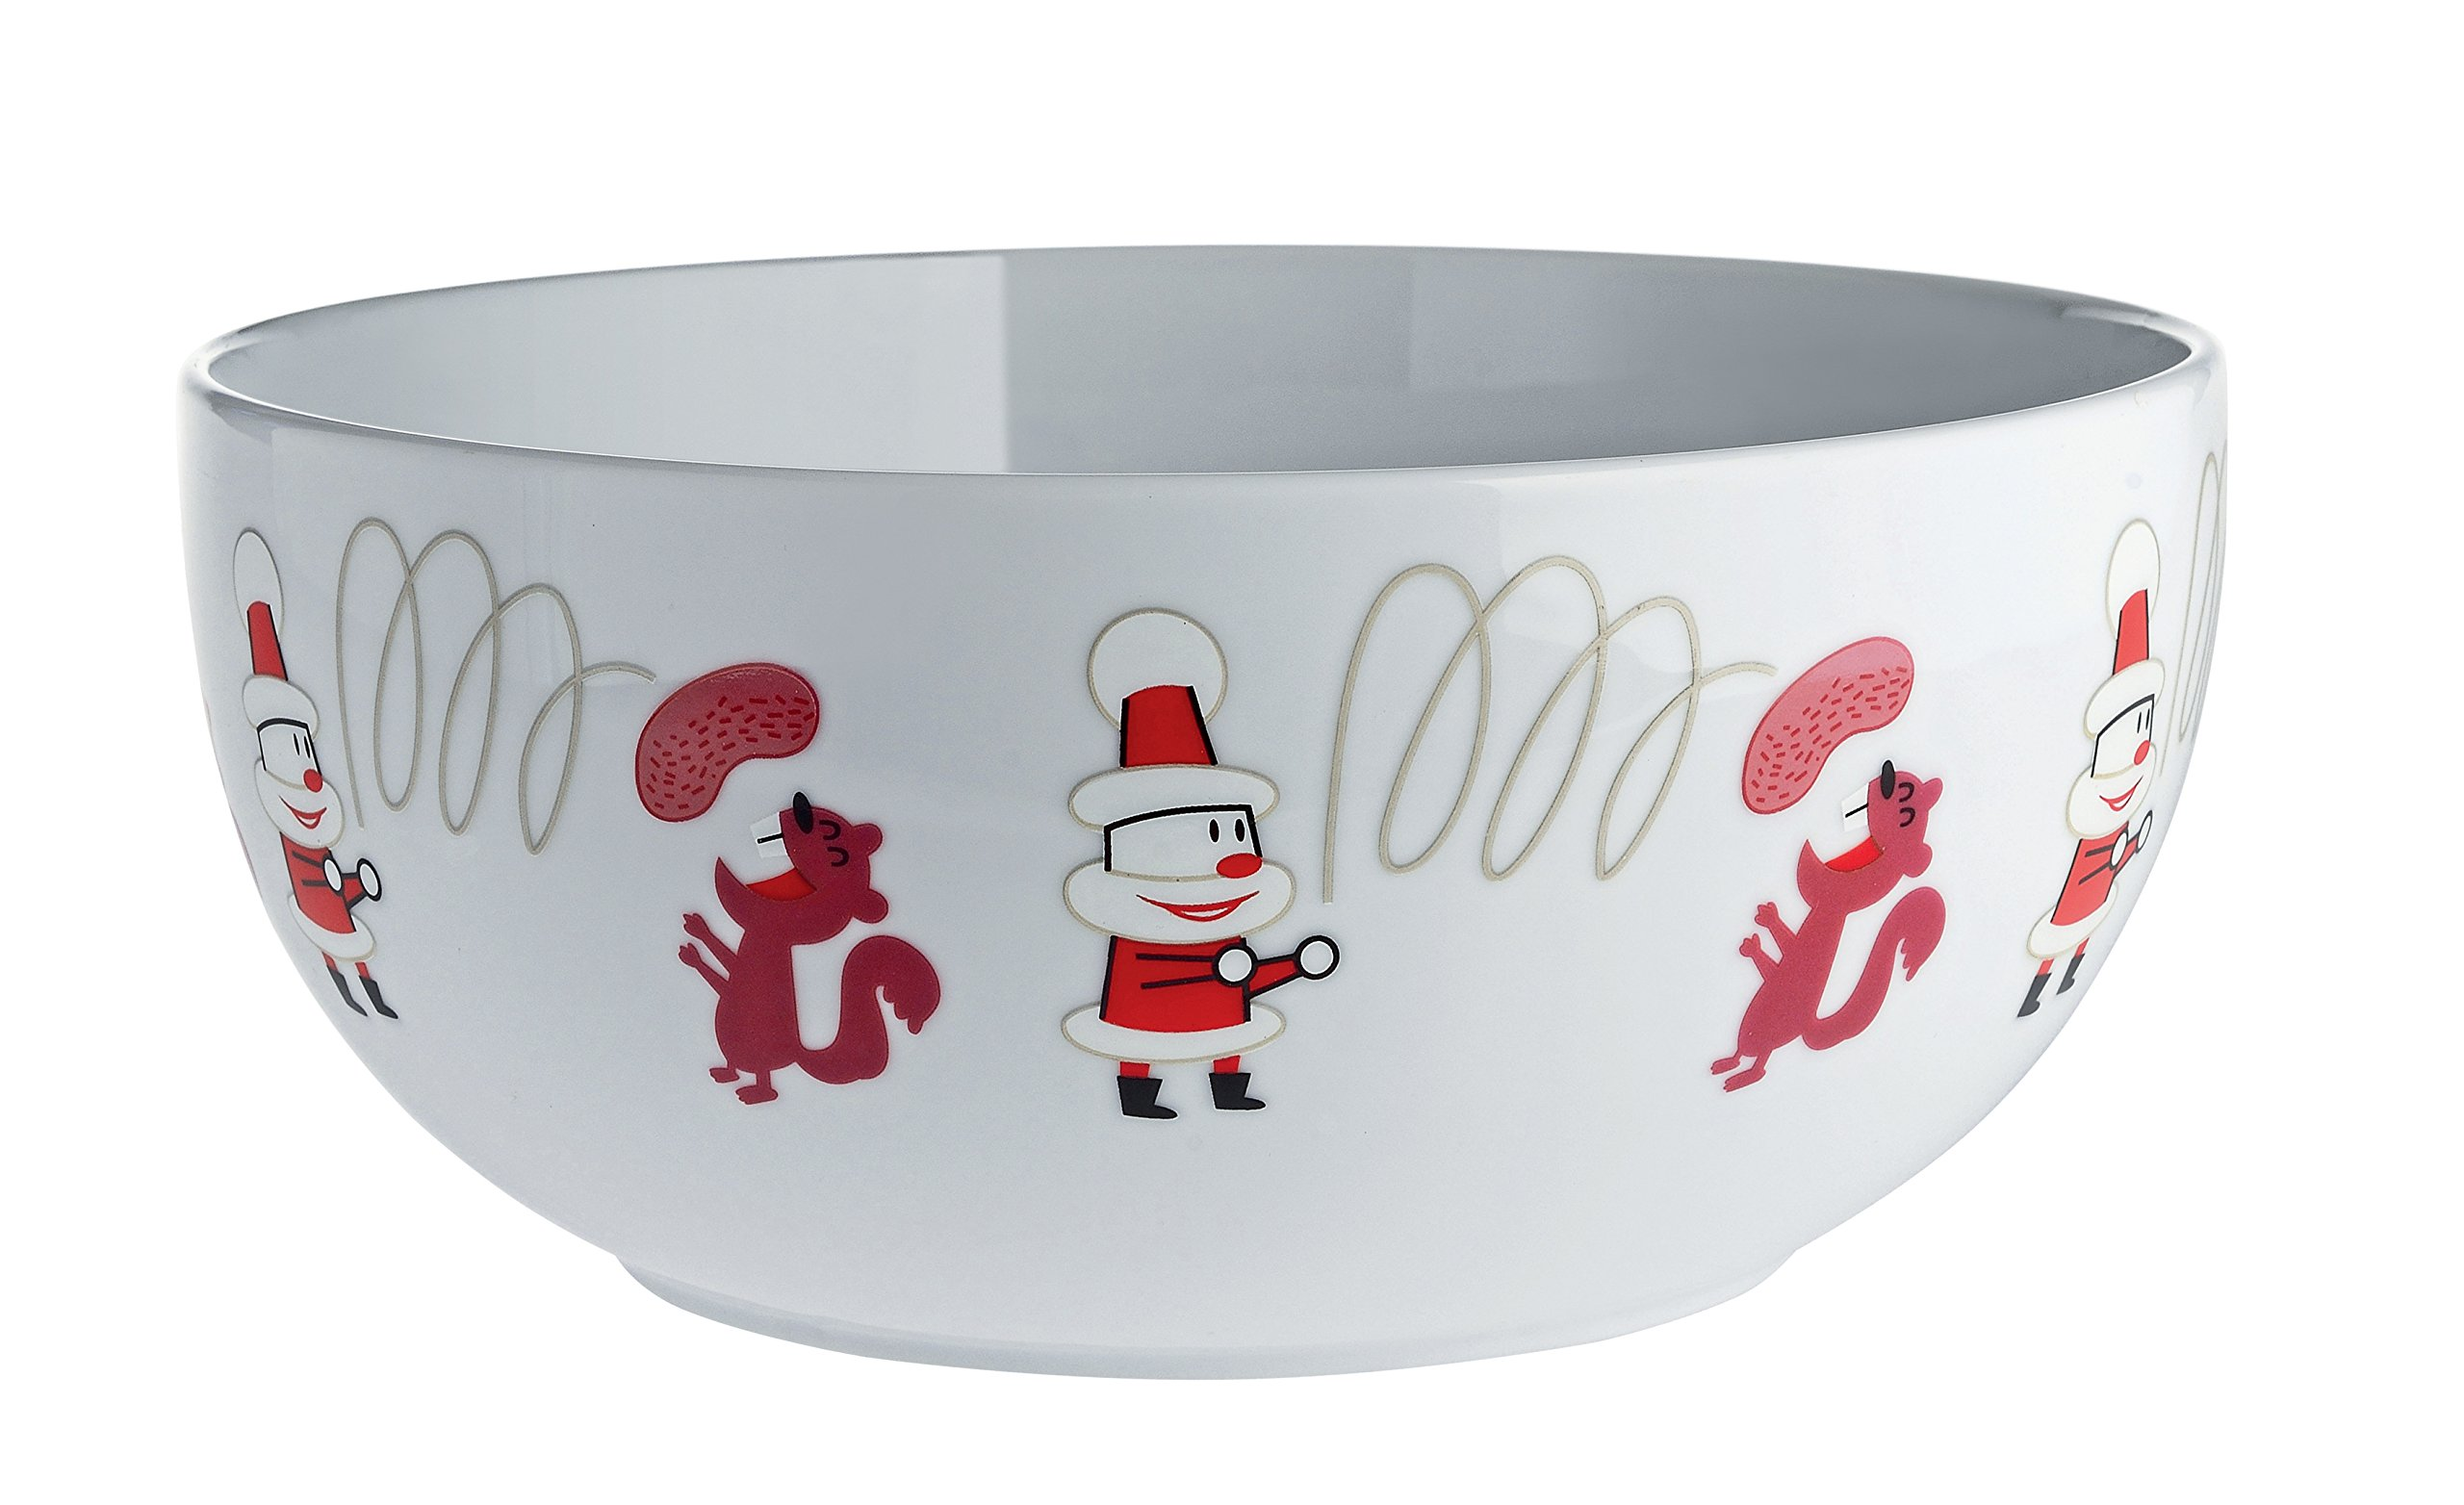 Alessi ''Get Nuts! Nut Bowl in Decorated Porcelain, White